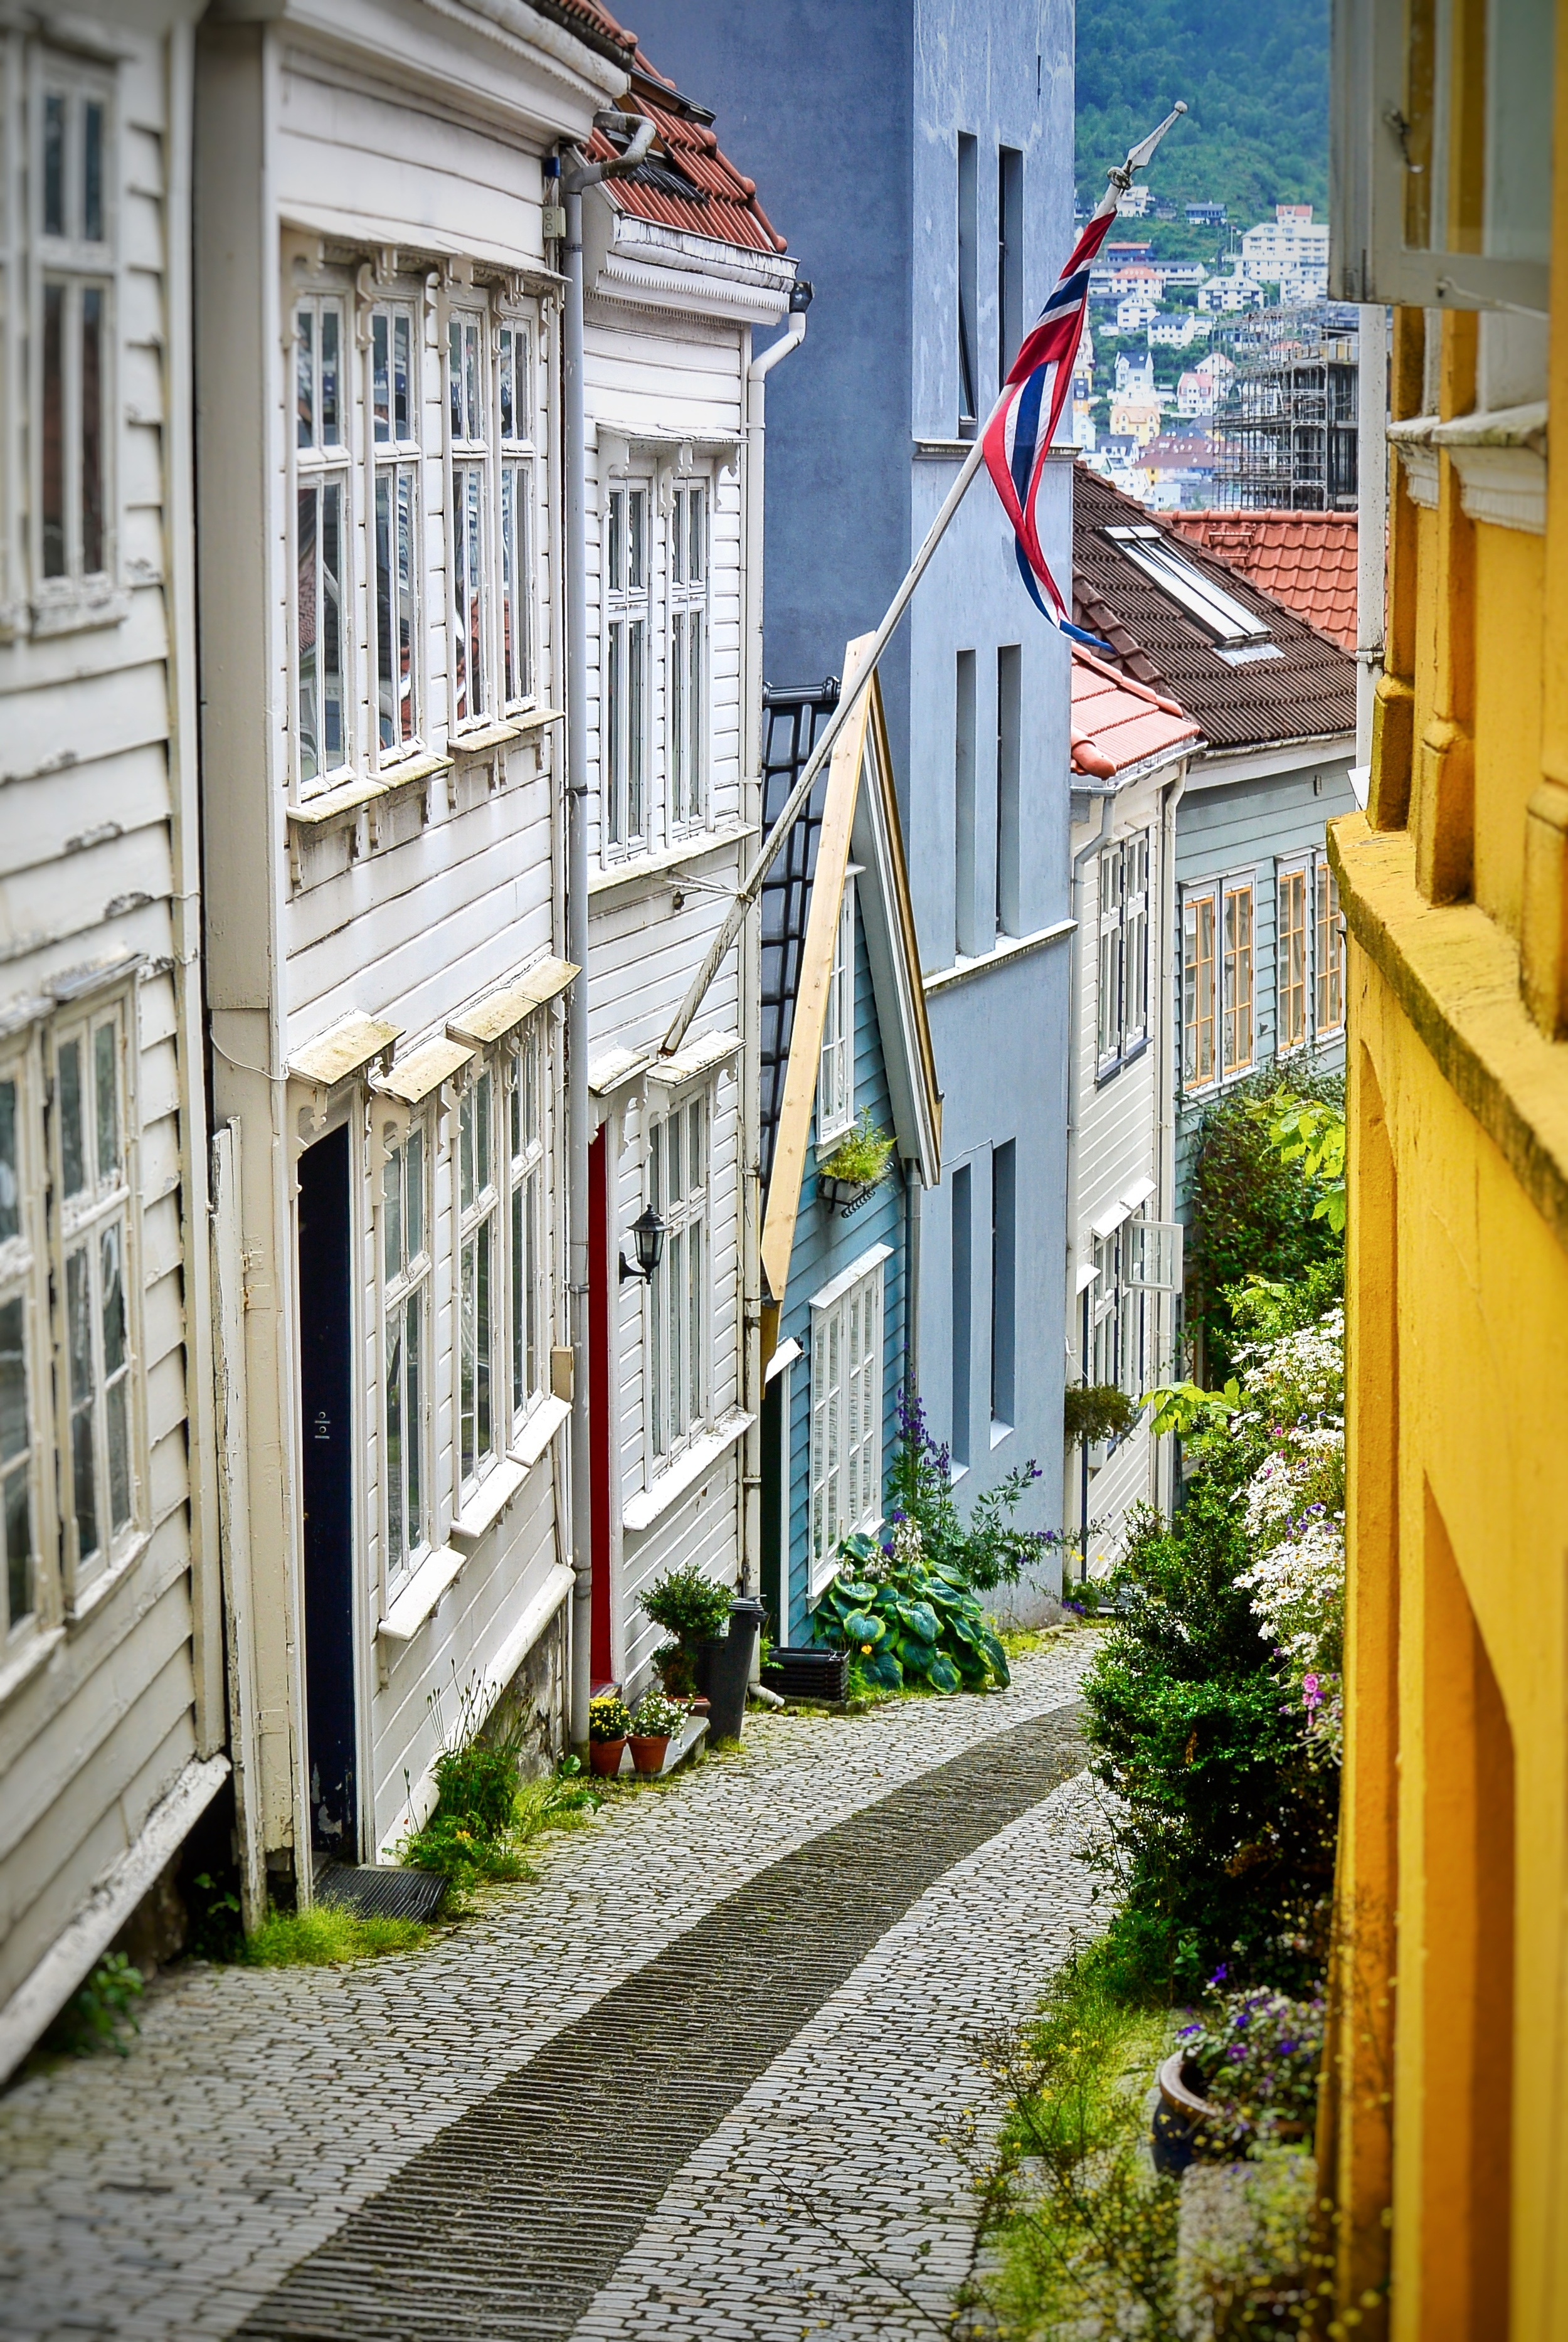 Downtown Bergen Alley and houses